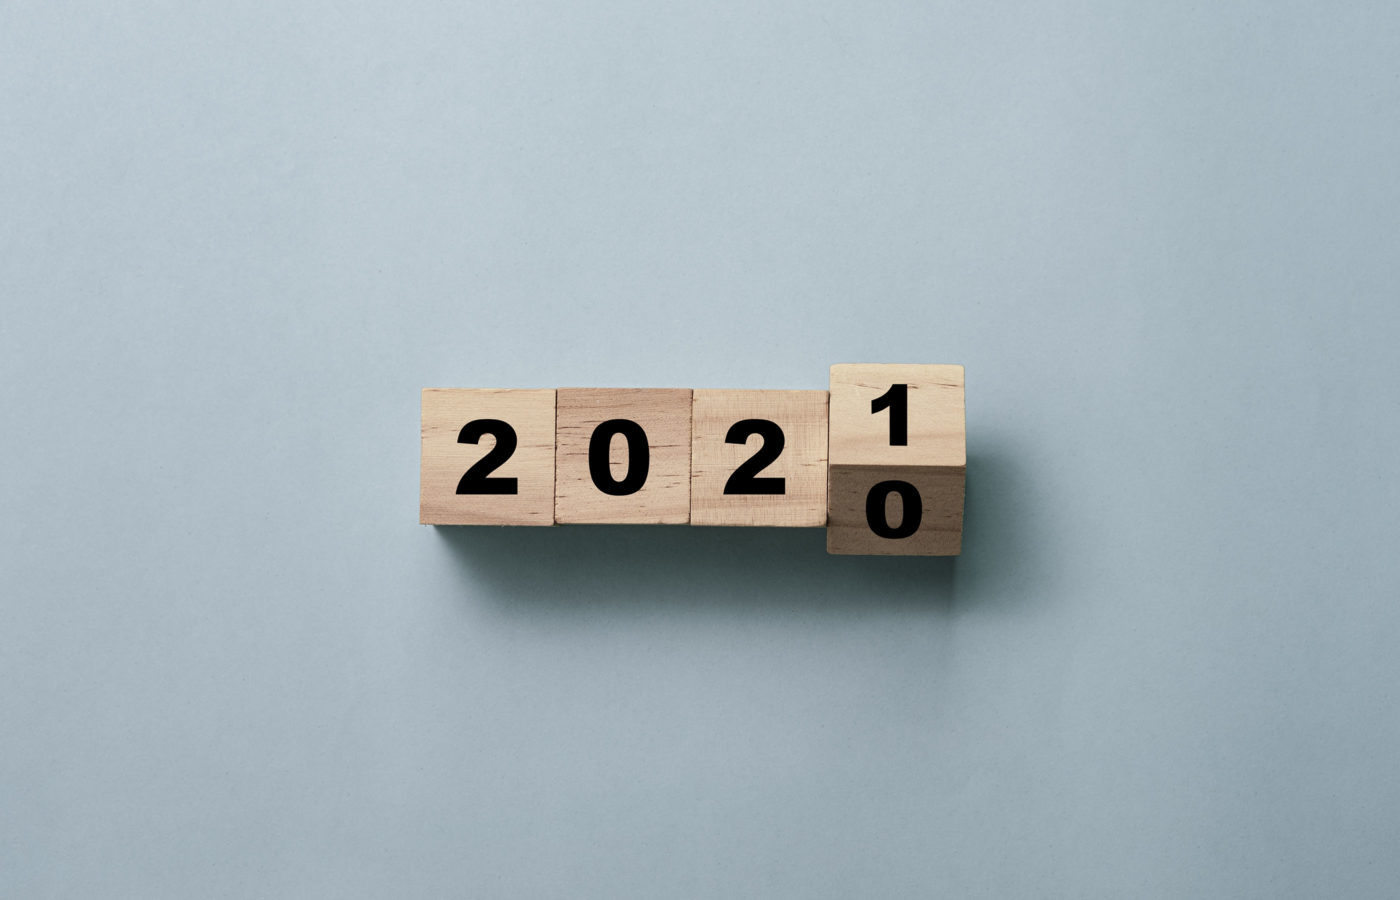 2021 Career Goals: 4 Ways to Step Up Your Game Next Year